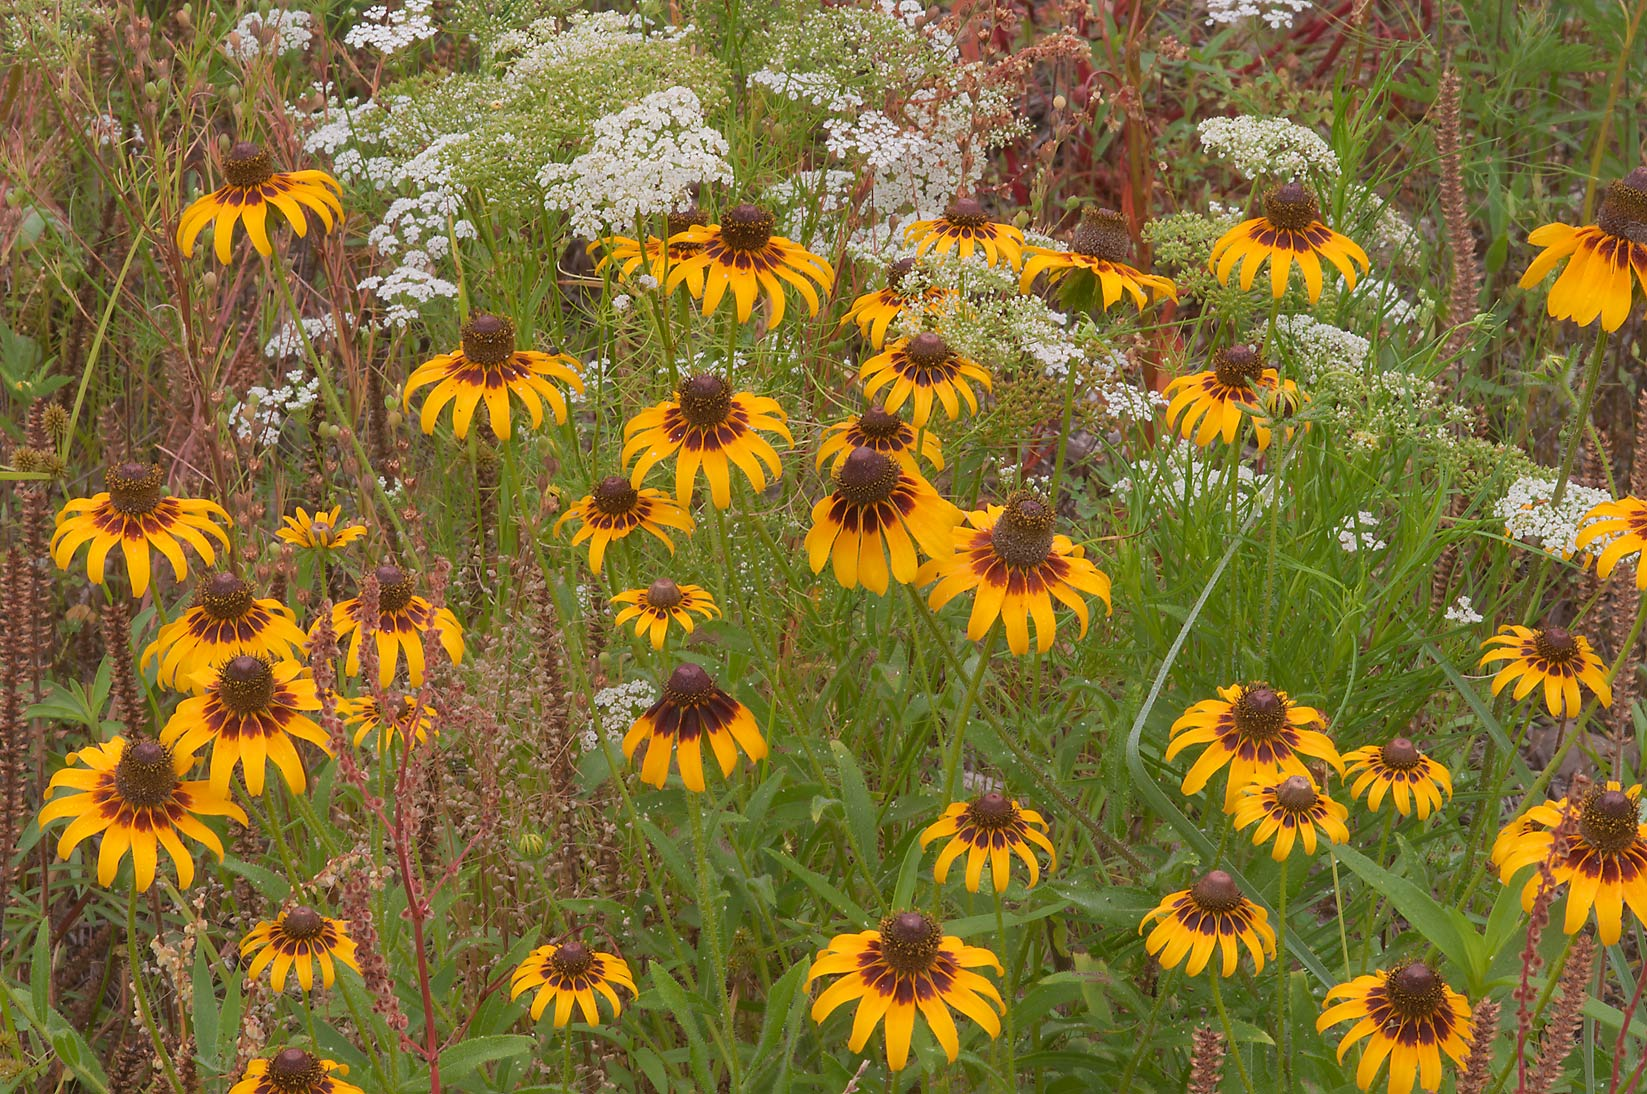 Black-eyed susan and Mock Bishop's Weed flowers in Lick Creek Park. College Station, Texas